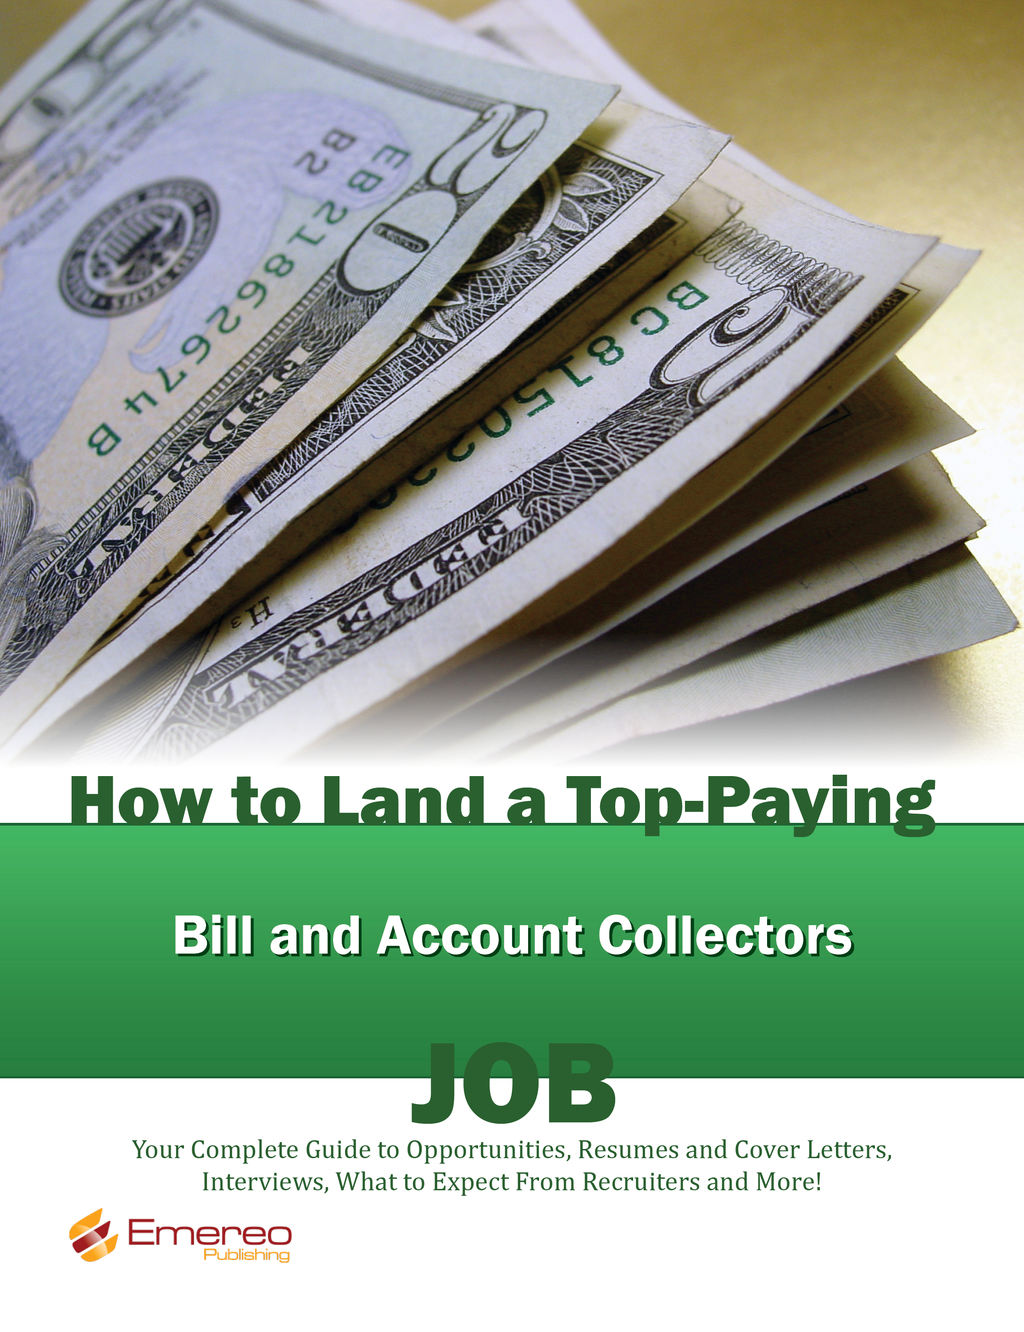 How to Land a Top-Paying Bill and Account Collectors Job: Your Complete Guide to Opportunities, Resumes and Cover Letters, Interviews, Salaries, Promotions, What to Expect From Recruiters and More!